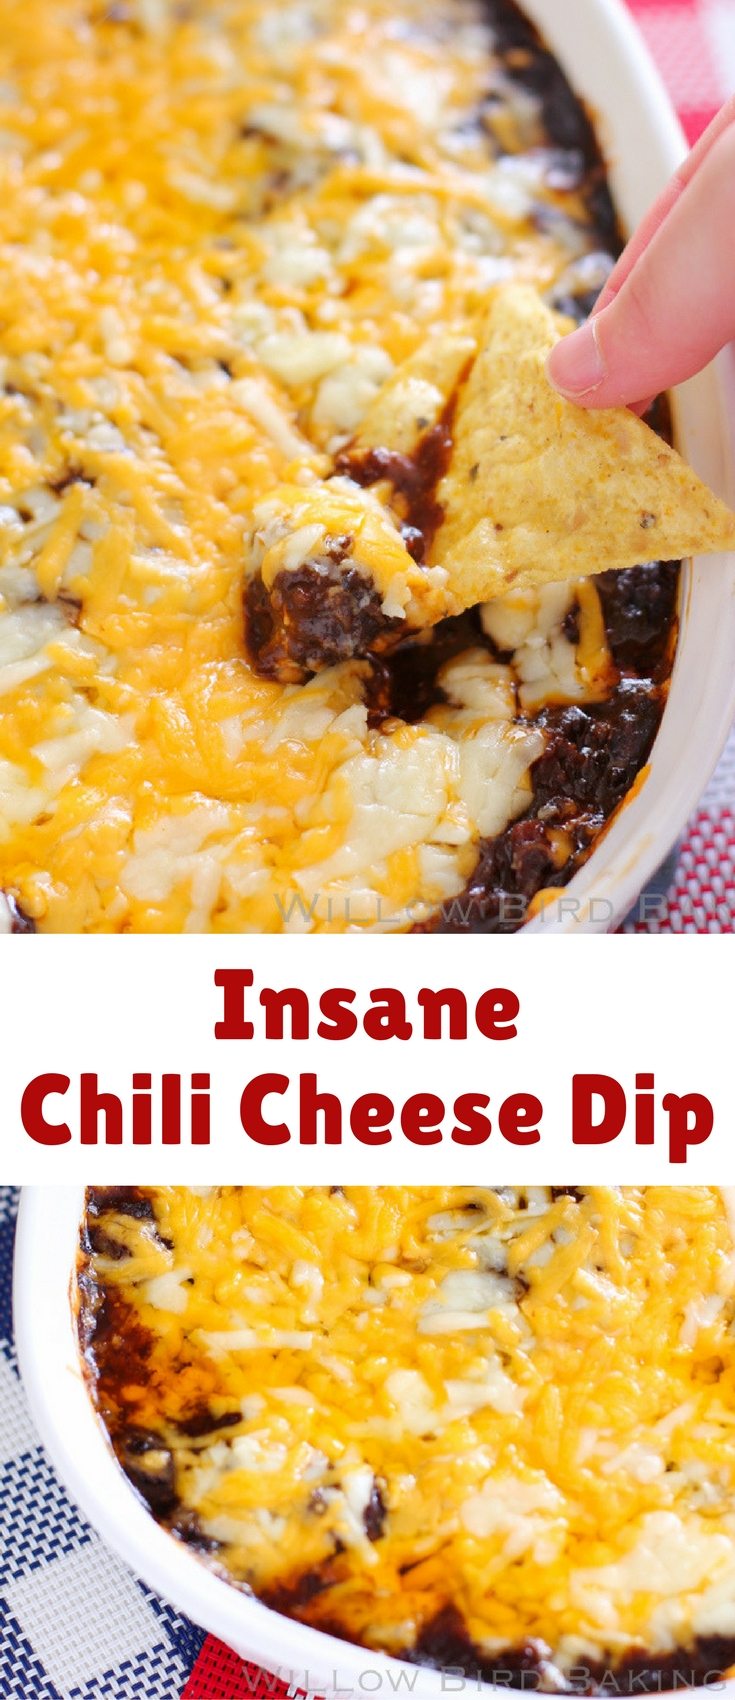 """Want some chili cheese dip to """"encourage"""" your husband or wife to run errands? I got ya covered. This dip was a family favorite when I was little. We used a can of Hormel chili without beans and it took around 15 minutes to whip up — perfect for an emergency last minute dip on game day!"""